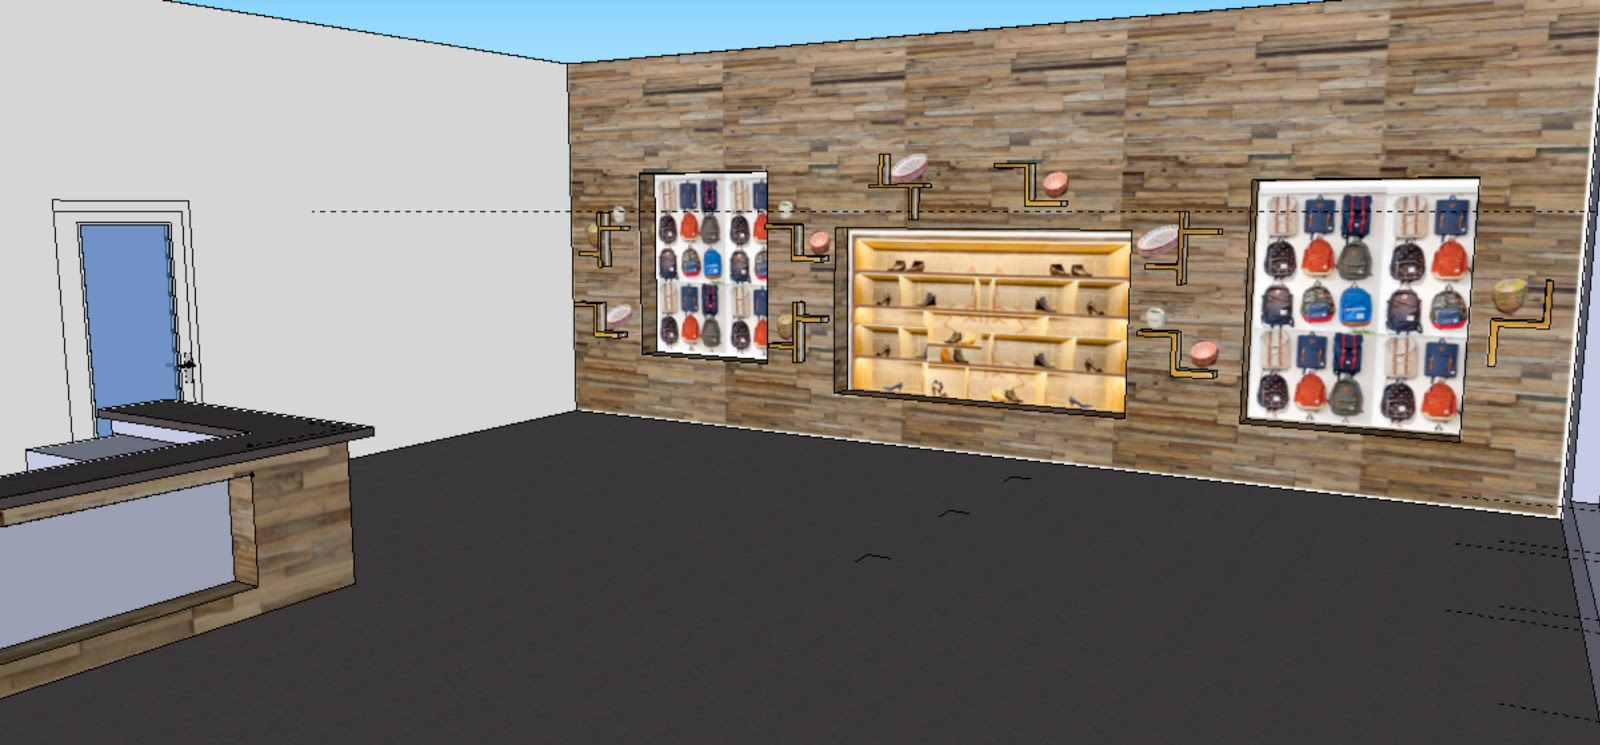 Adventures in creating workspace retail progress it is covered in sough wood slats has display shelving popping out of the wall for small sale items and large shelves built into amipublicfo Images